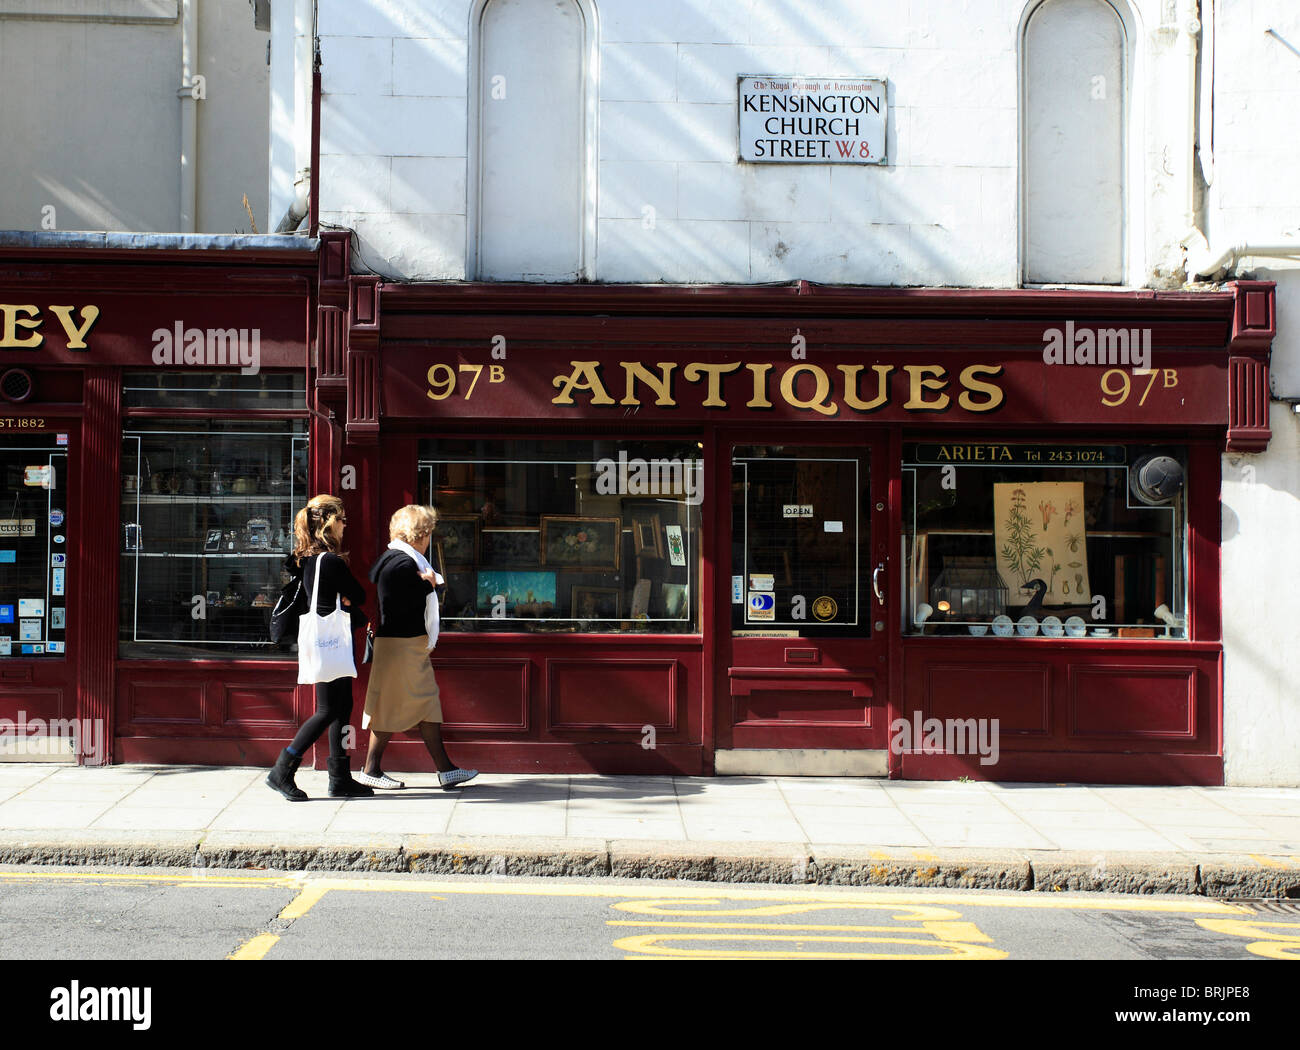 Antique Shops in Kensington near to Notting Hill Gate London - Stock Image